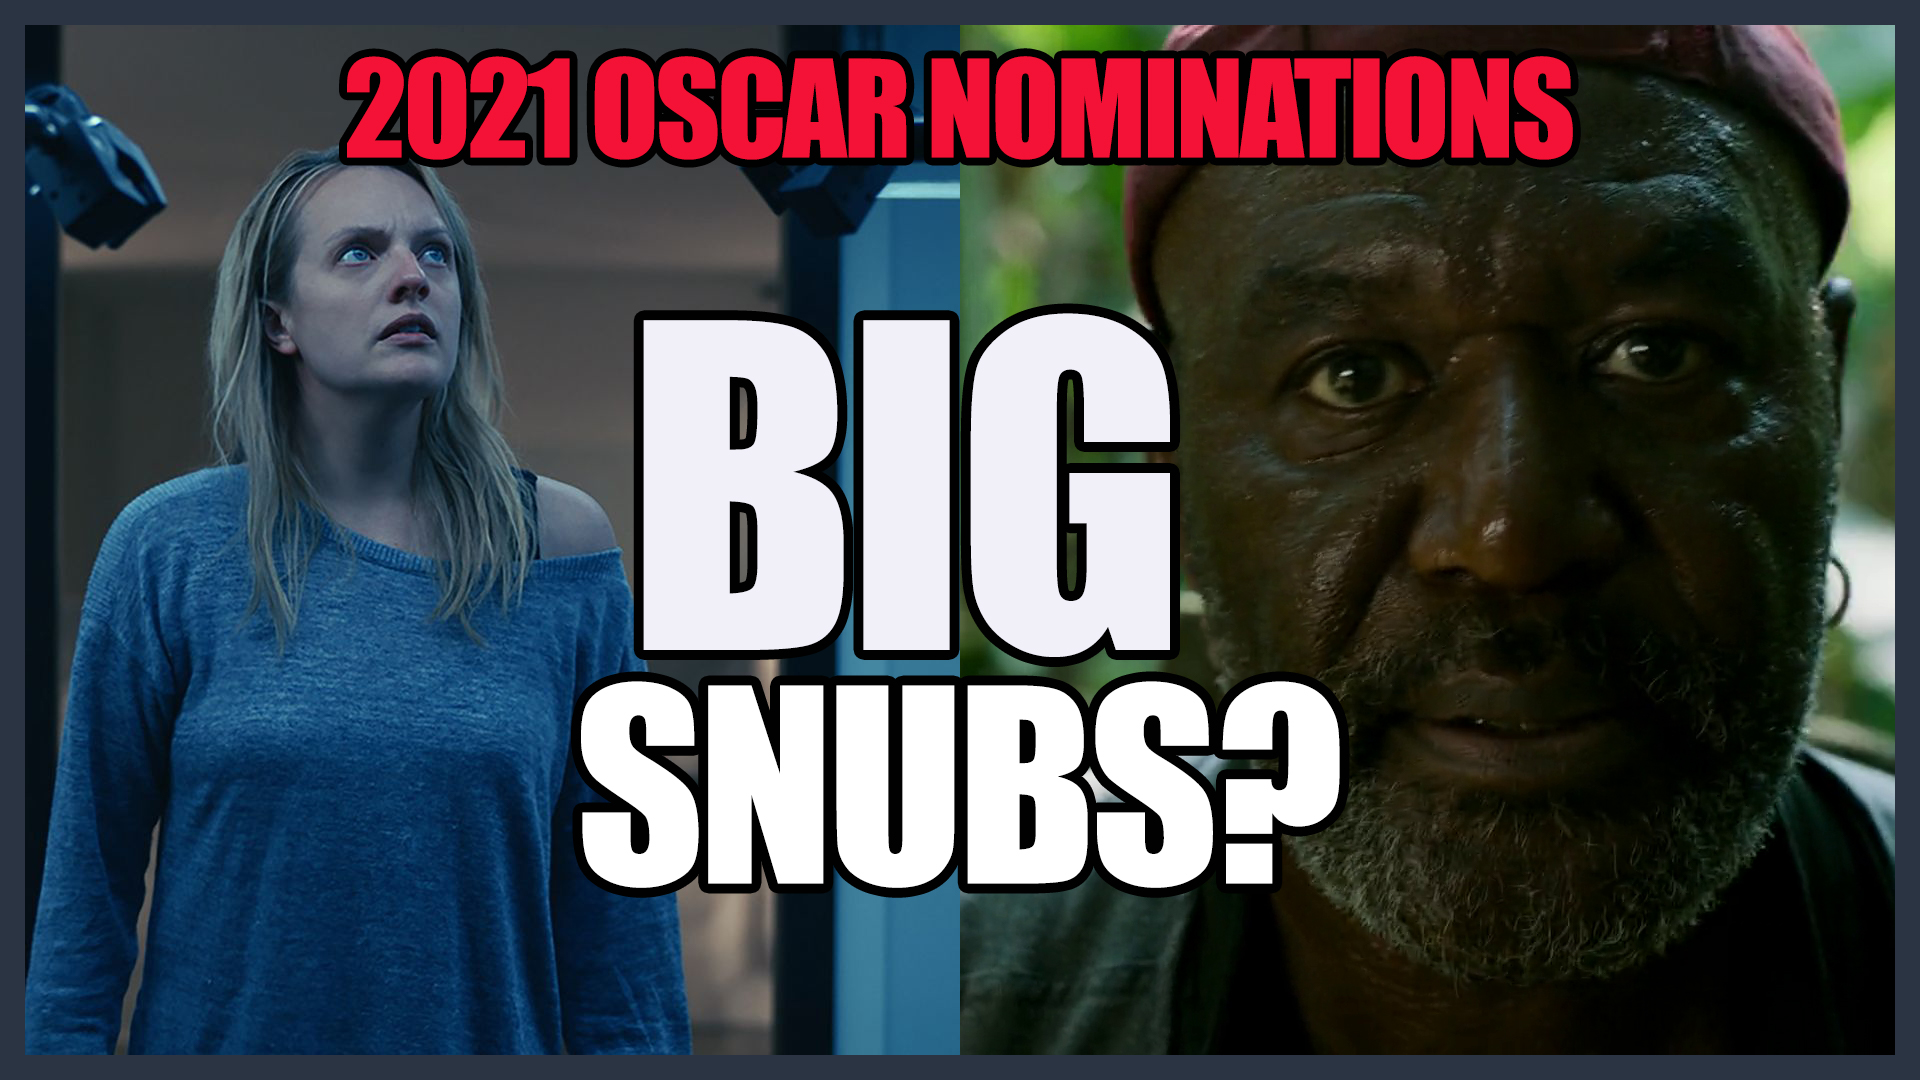 2021 Oscar Nominations Reaction | Big Snubs for Delroy Lindo and Elizabeth Moss! | LOWKEY GEEK Podcast Special